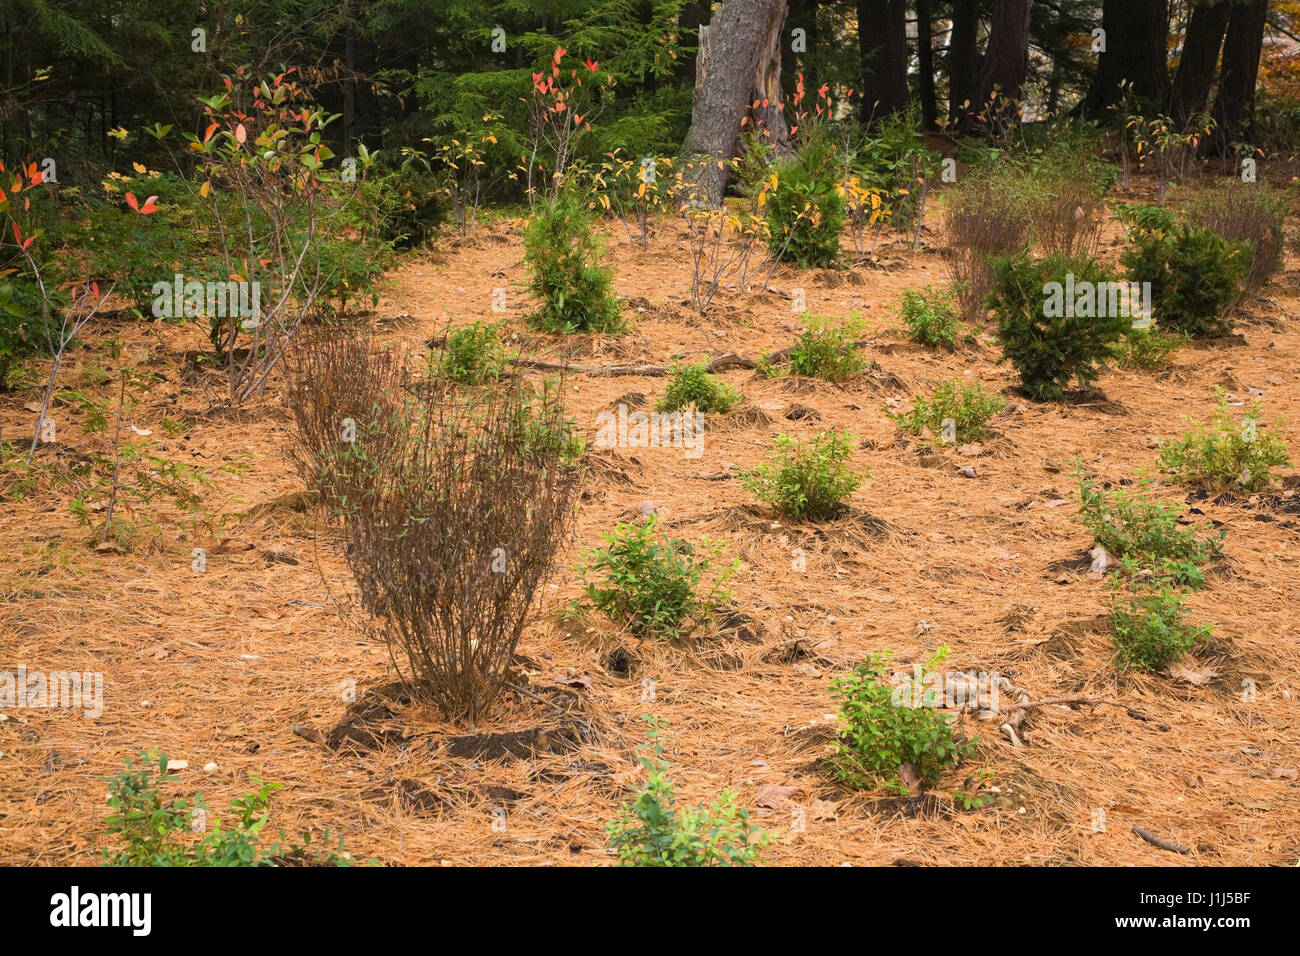 Perennial shrub plantings and evergreen cedar Thuja, yew Taxus baccata trees in a public park. - Stock Image